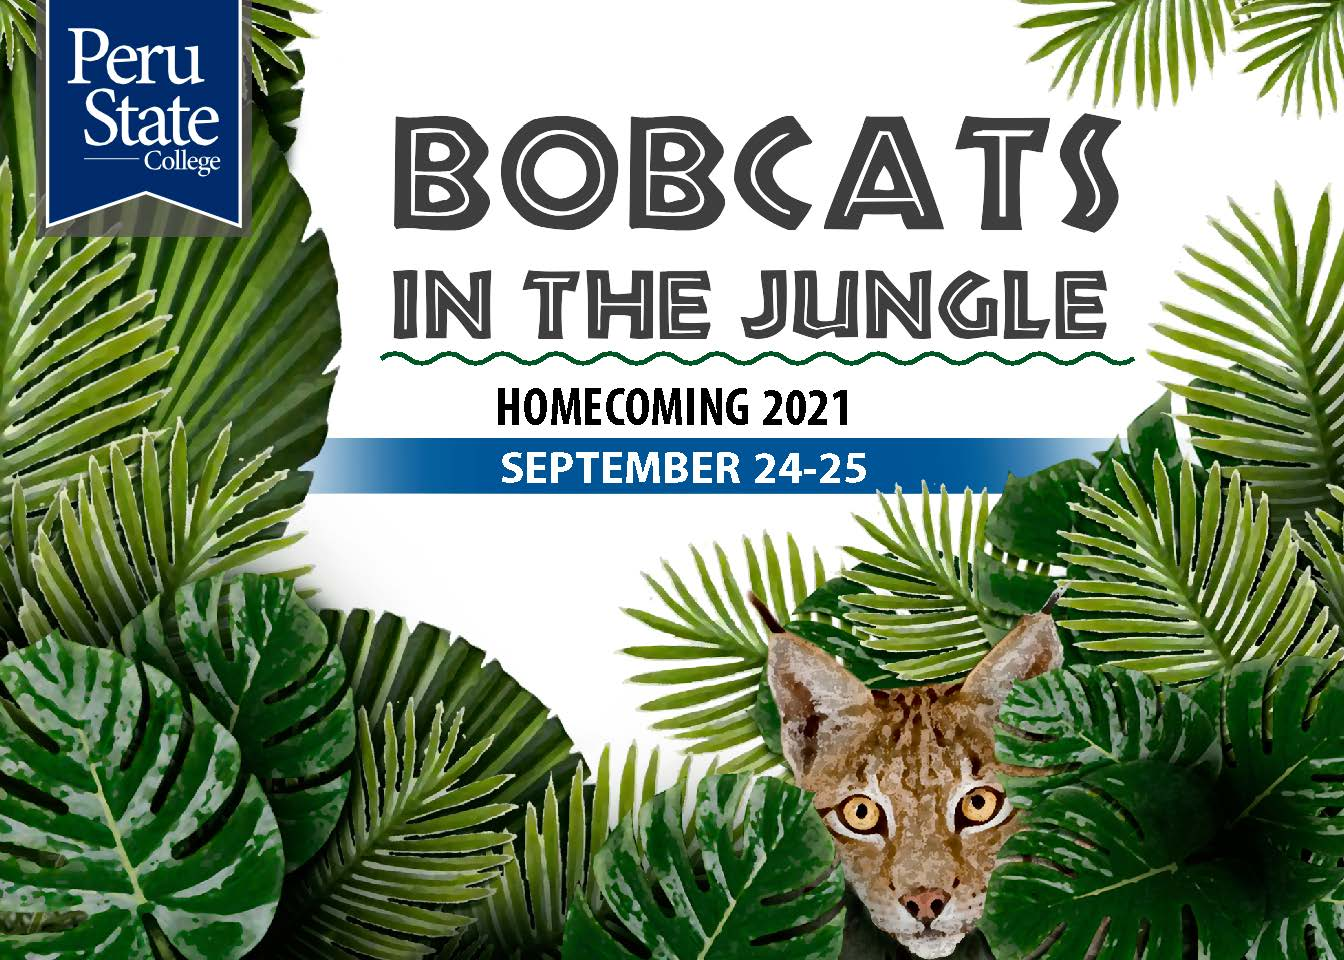 Bobcats in the Jungle